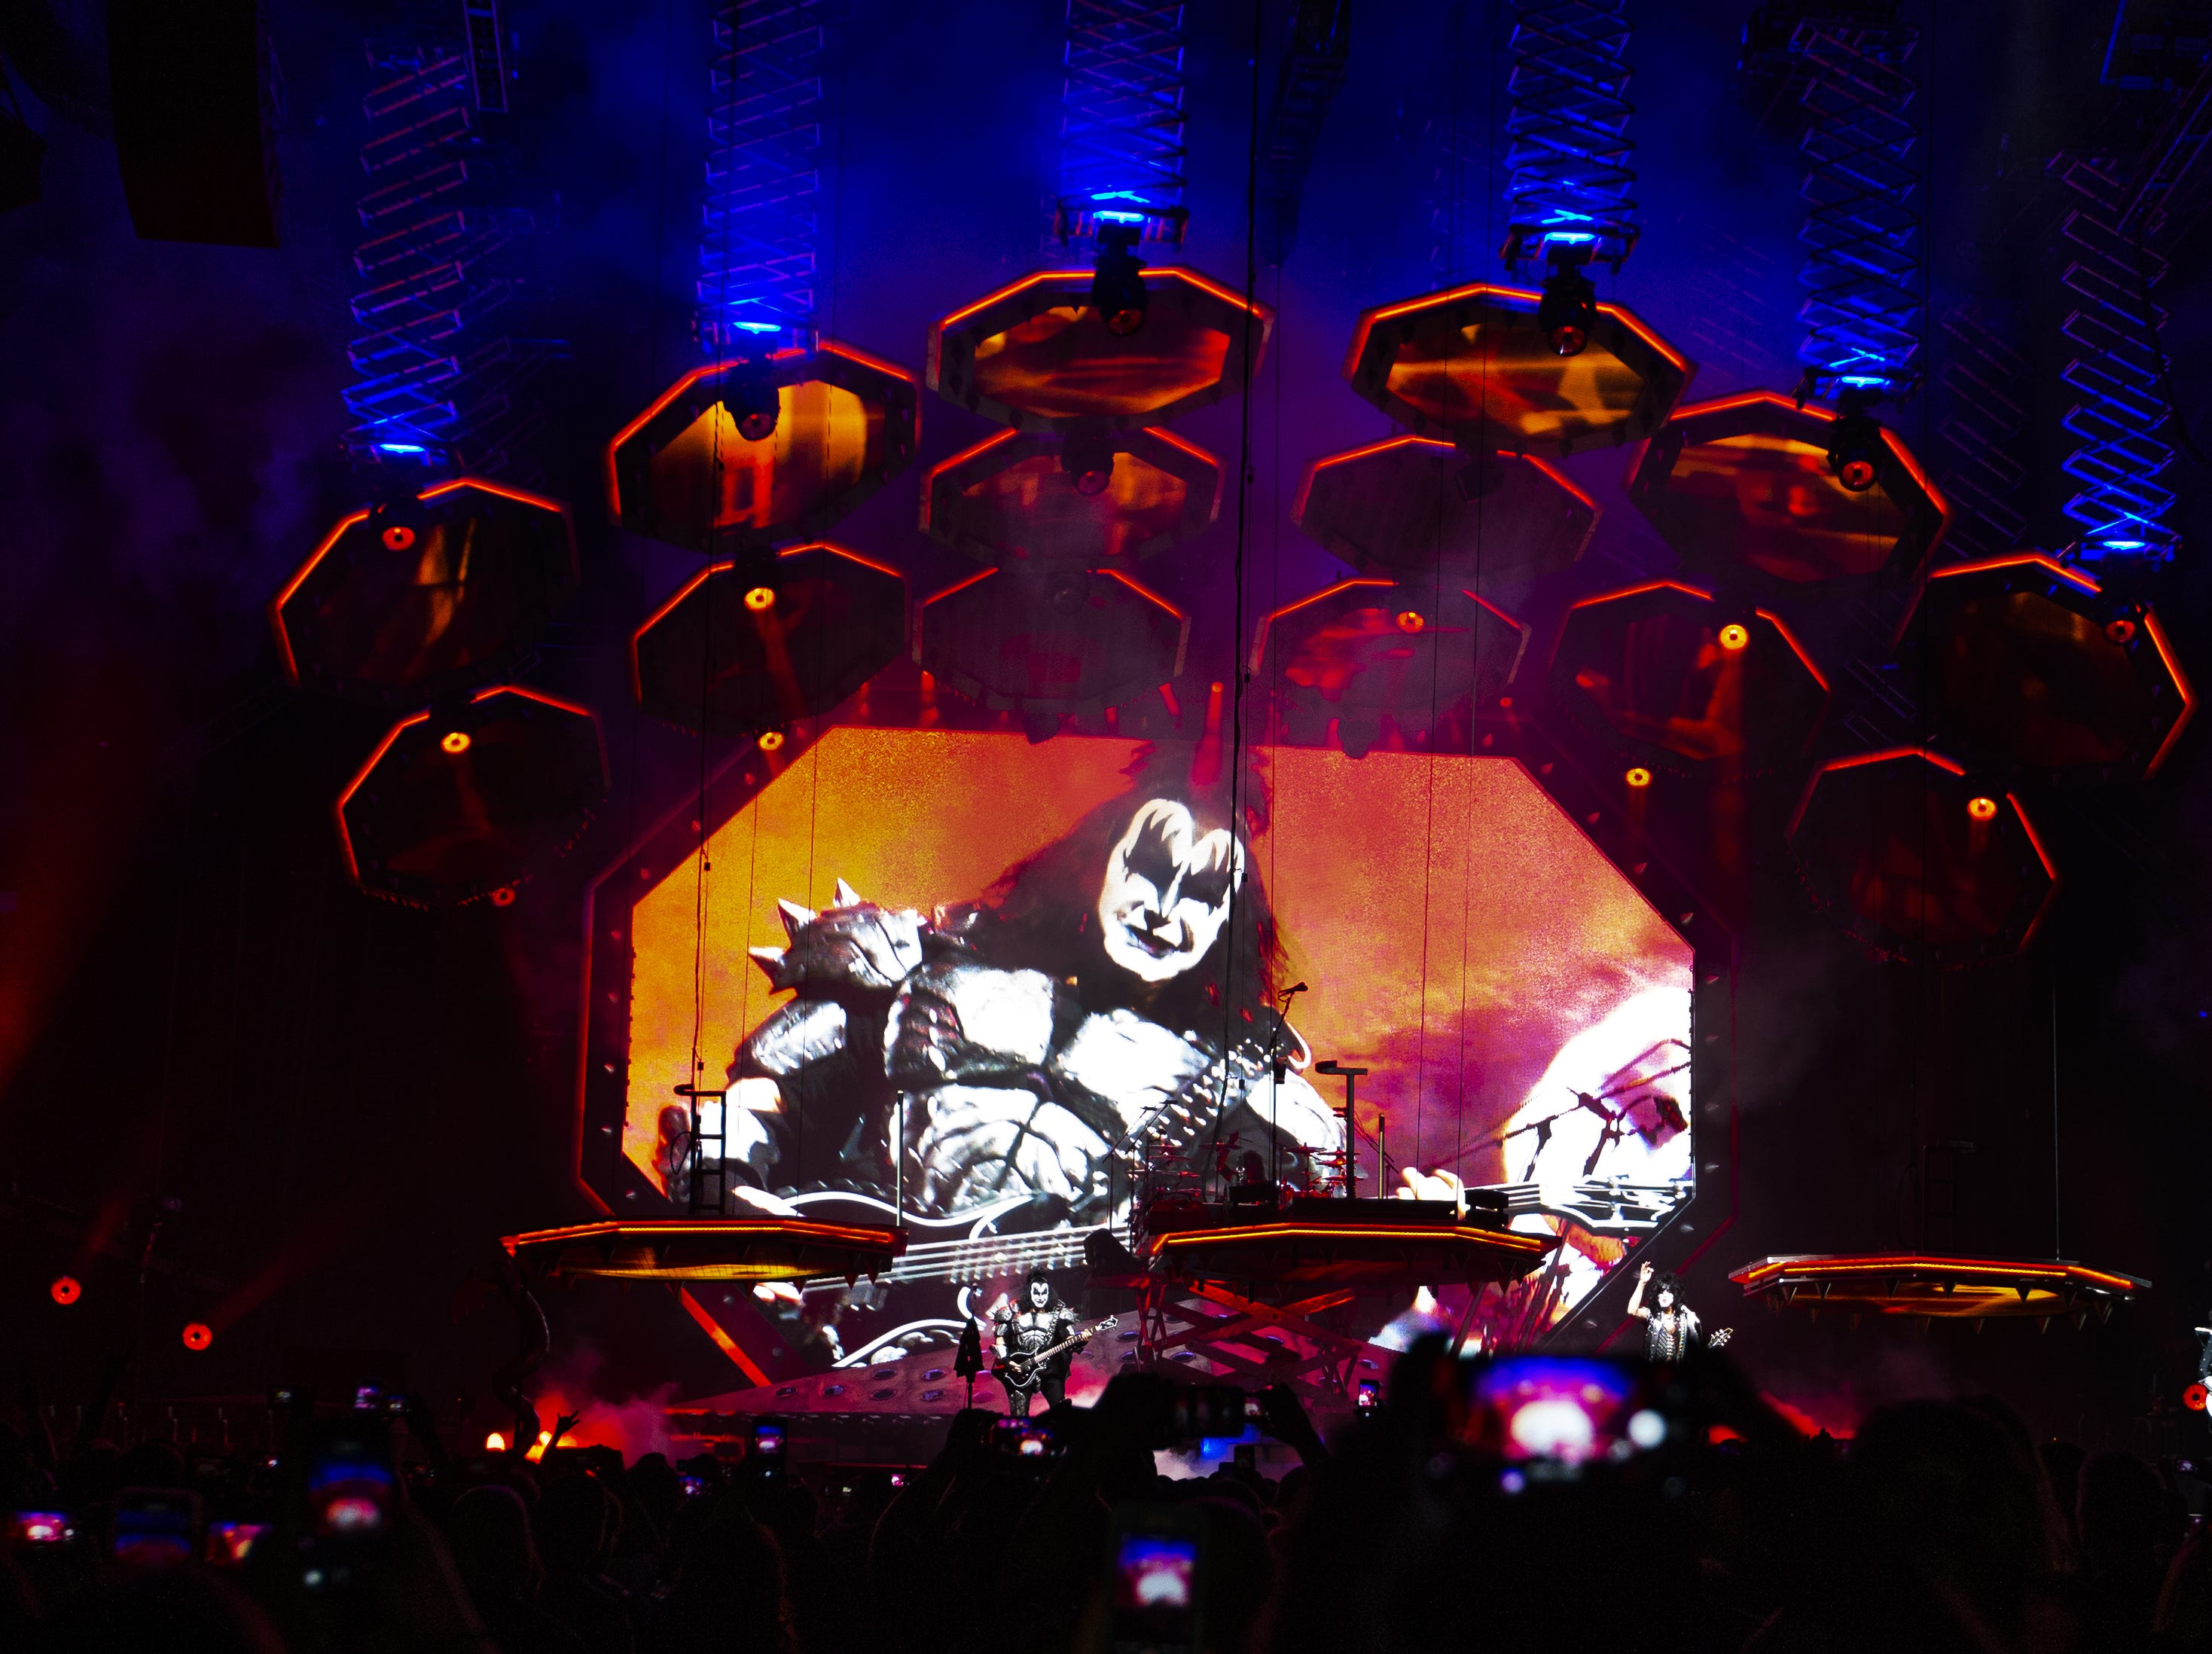 KISS rocks Gila River Arena during the End of the Road World Tour stop in Glendale on Wednesday, Feb. 13, 2019.  Thousands of fans came to see the band's farewell concert.